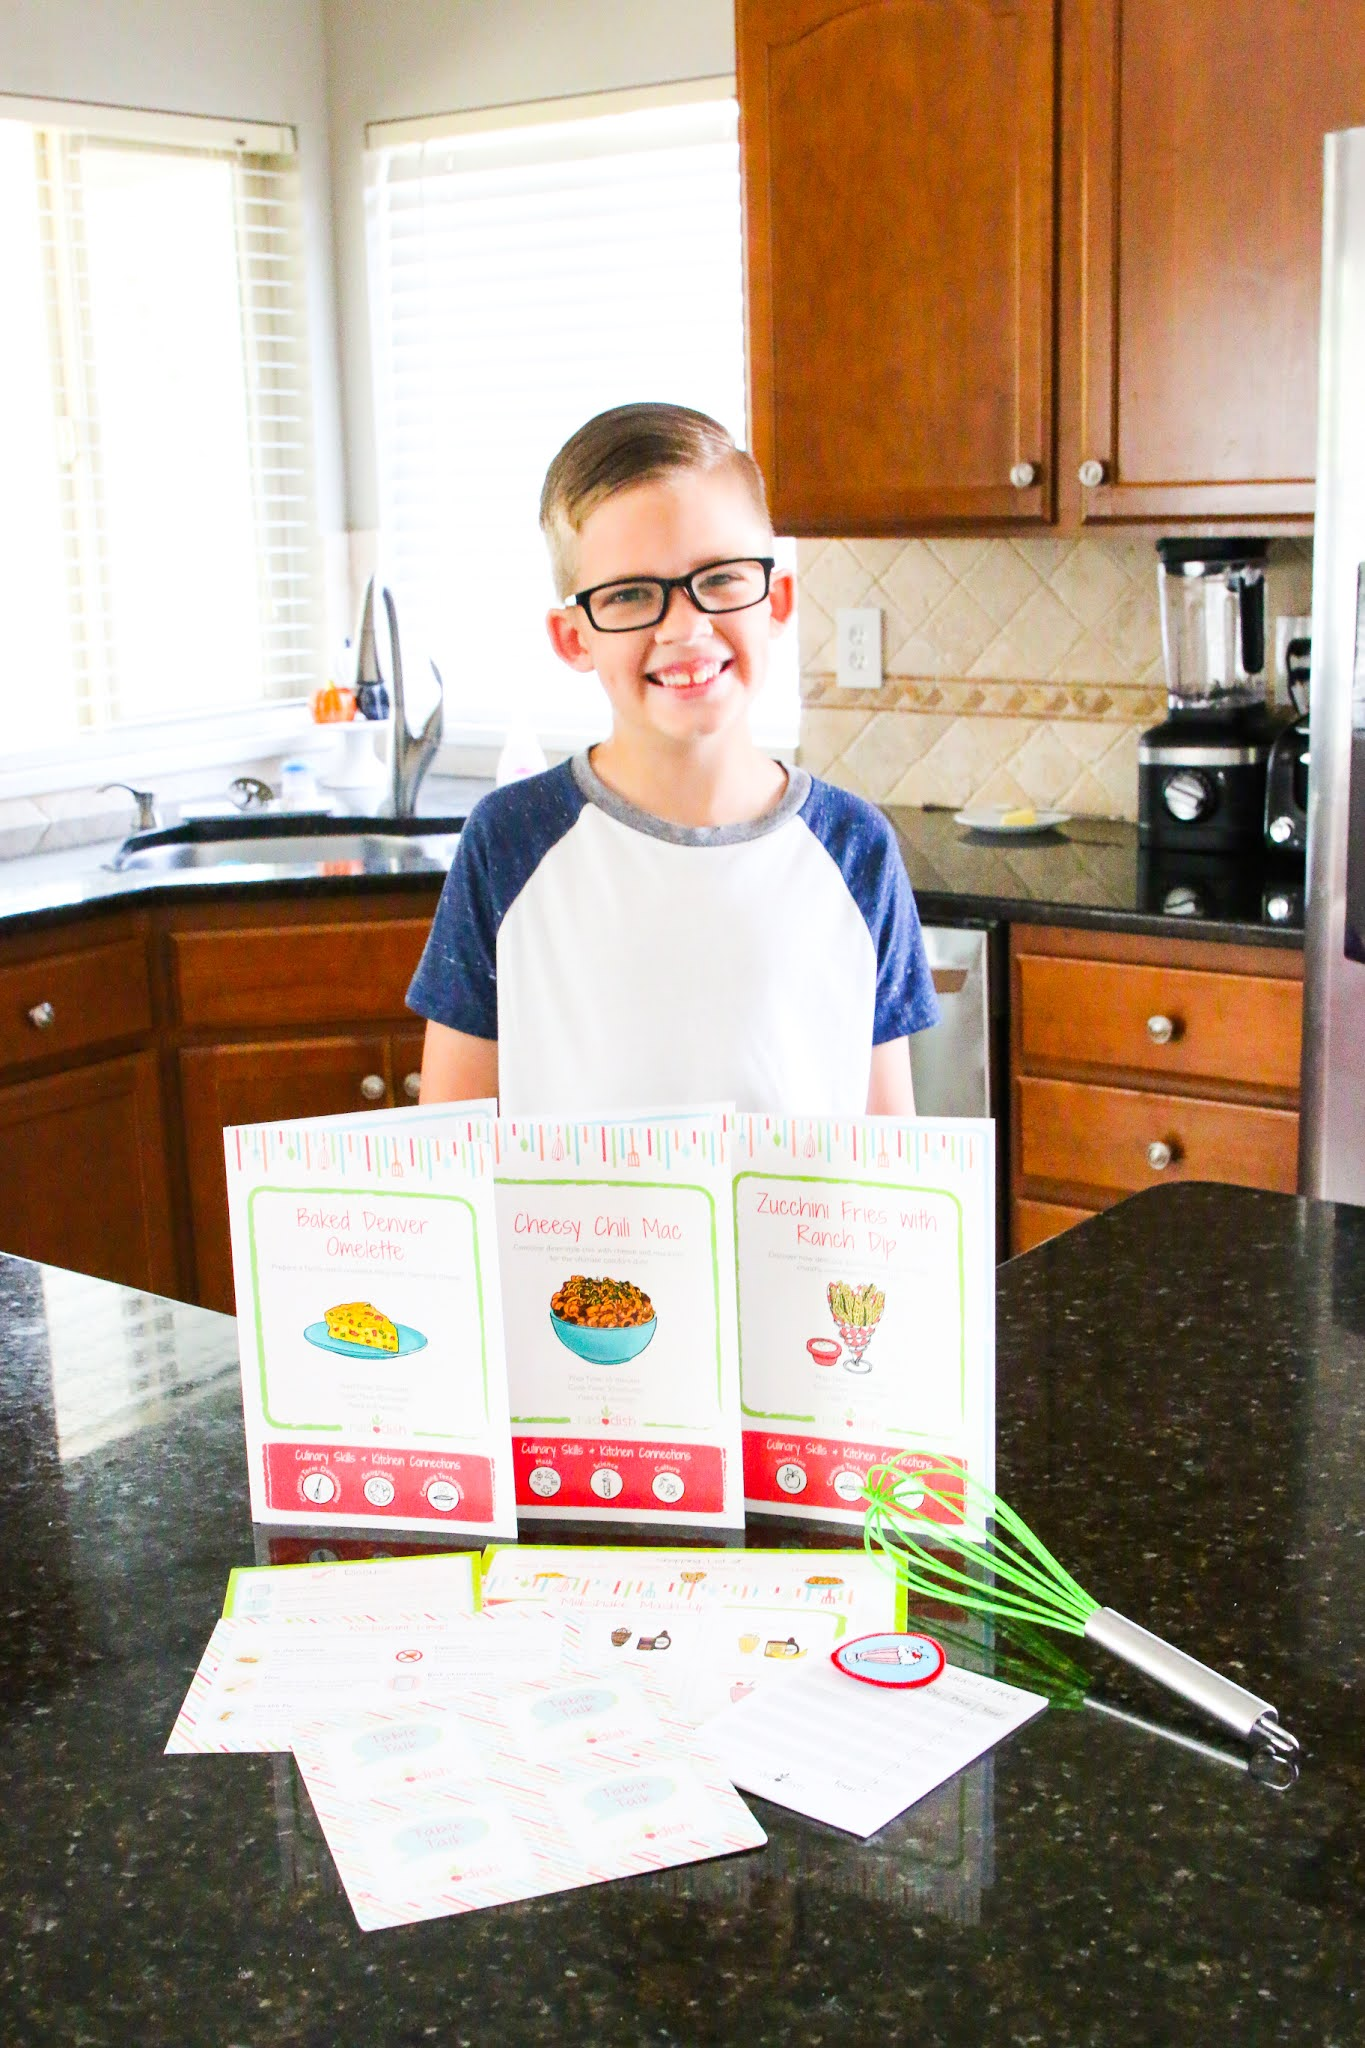 Raddish kids reviews. Raddish kids coupon code. Raddish kids promo code. Raddish kids recipe reviews. How to teach your child to cook. The best way to teach your child cooking skills. Easy recipes for kids to cook. Subscription boxes for homeschooling. Homeschool activities for kids. #homeschool #cooking #homesconomics #subscriptionboxes #kids #learning